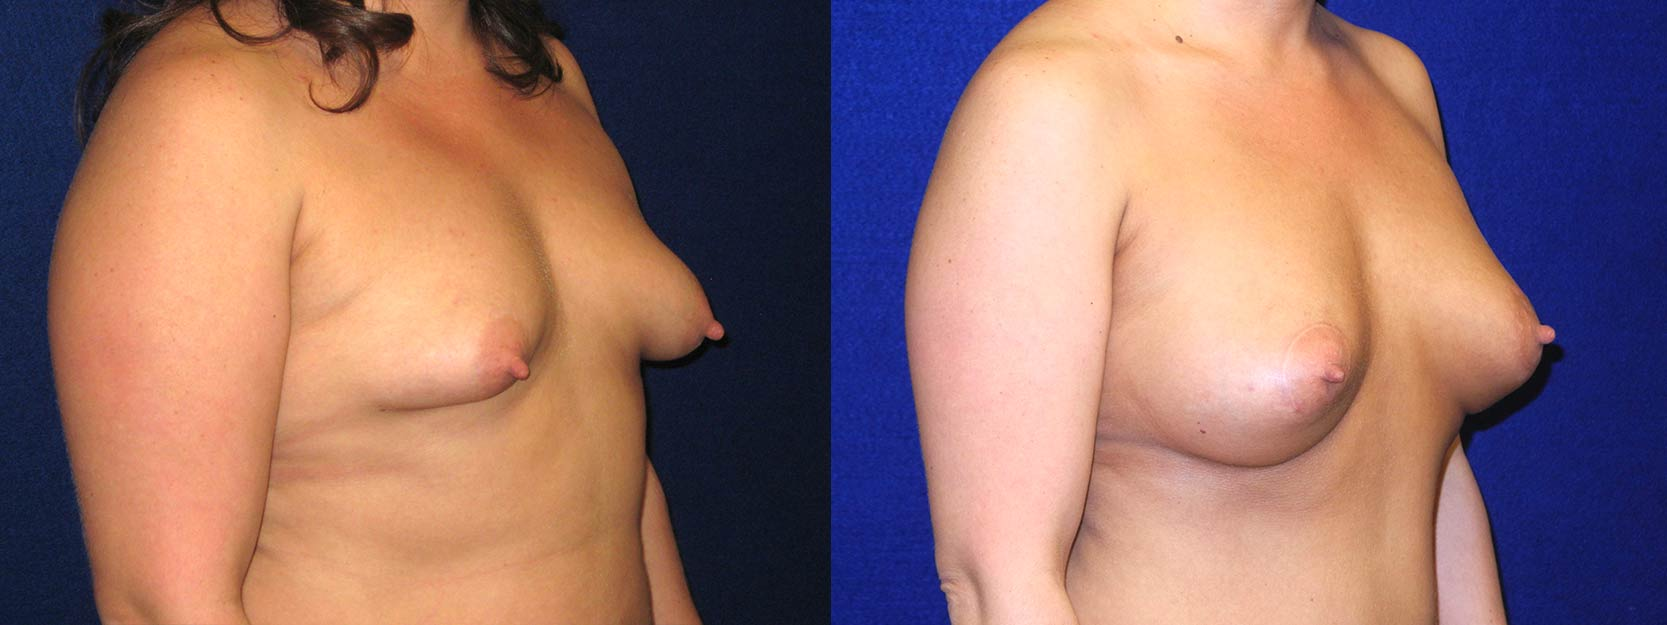 Right 3/4 View - Breast Augmentation with Periareolar Lift